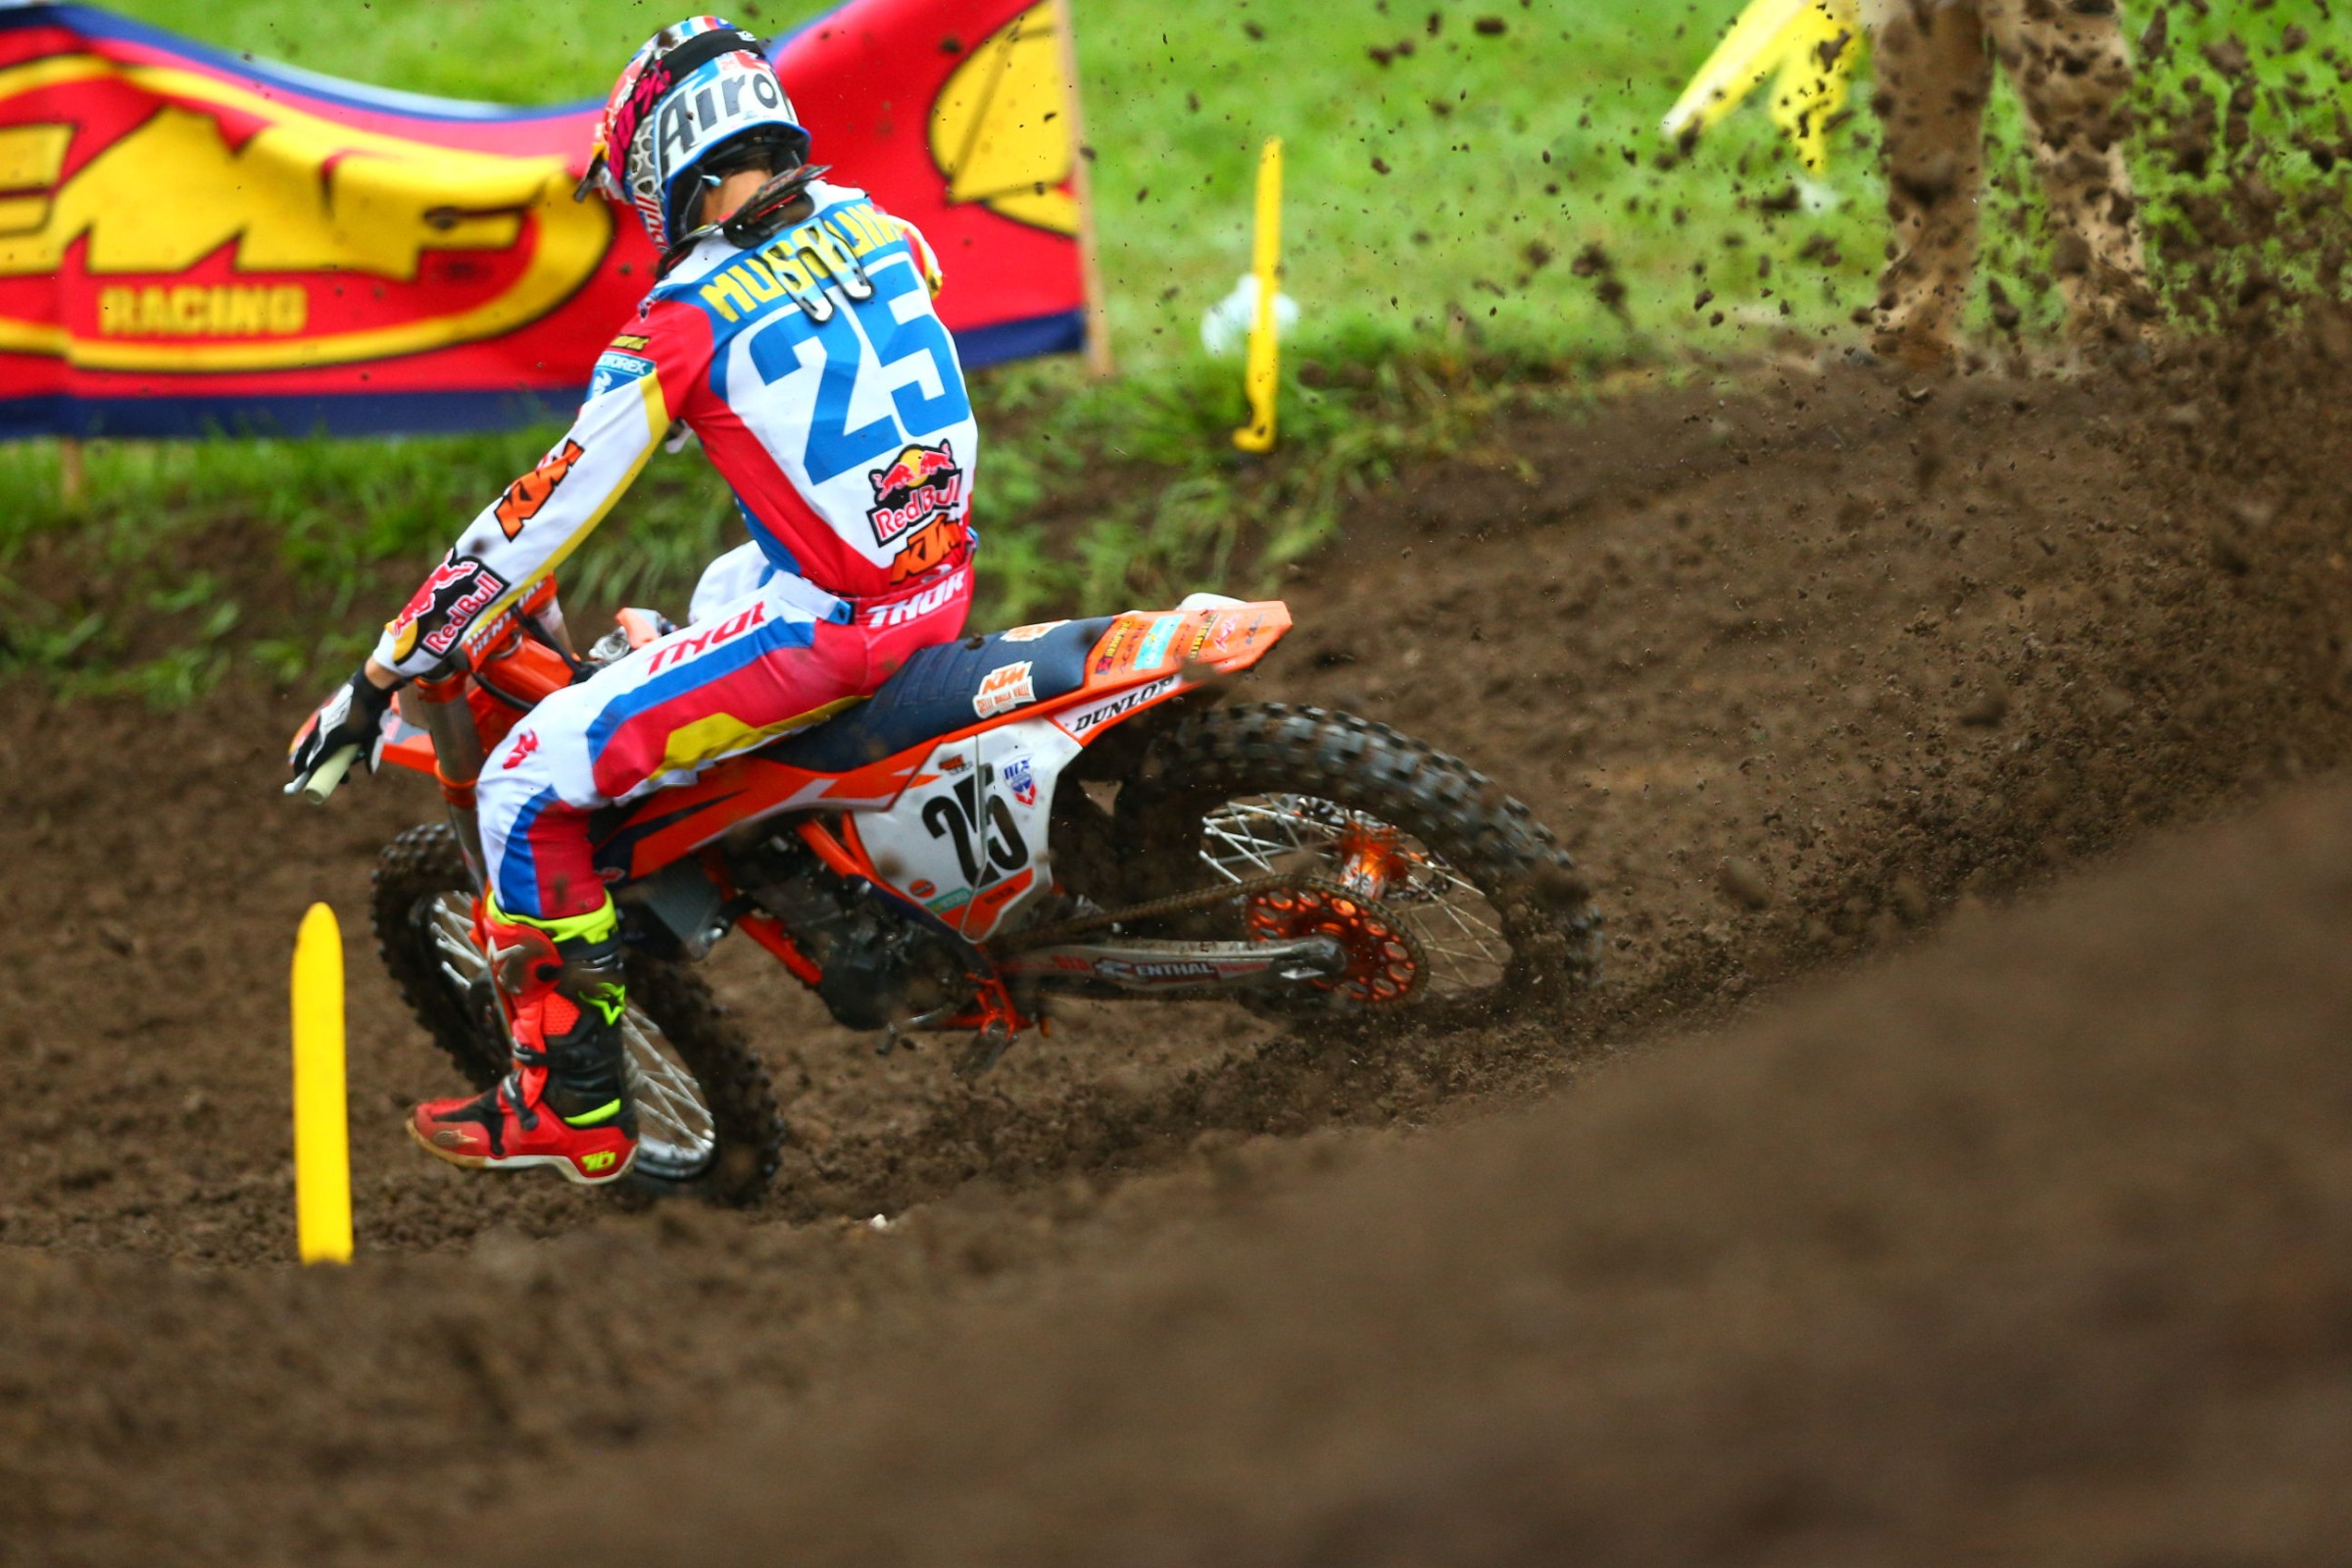 Poor Marvin Musquin fought through his knee injury all day only to have front brake problems lead to a DNF in moto two.